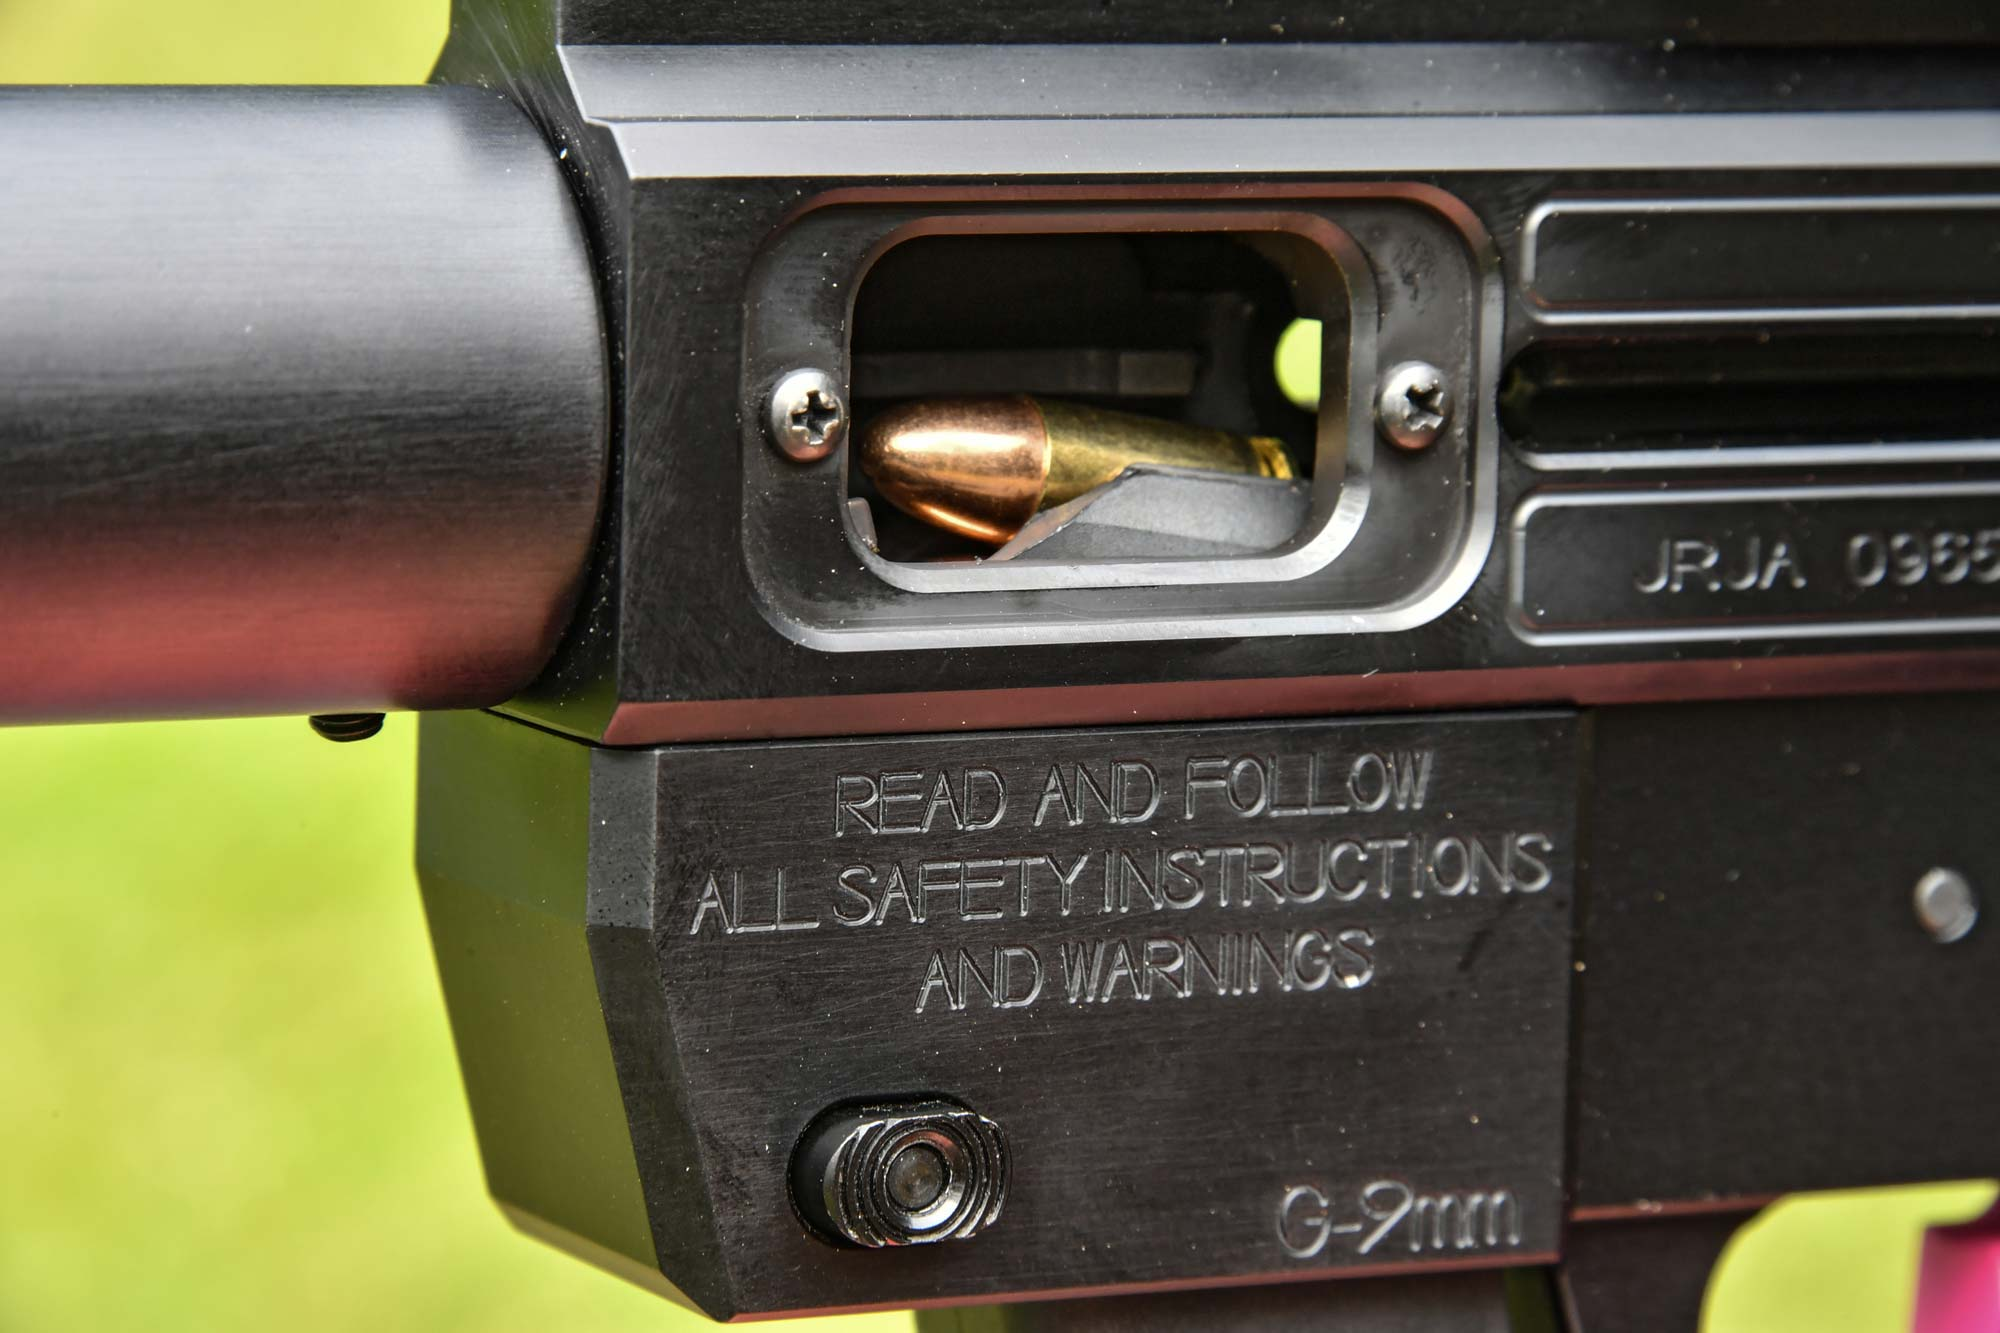 Ejection port on the Gen3 Sporter pistol-caliber carbine by Just Right Carbines